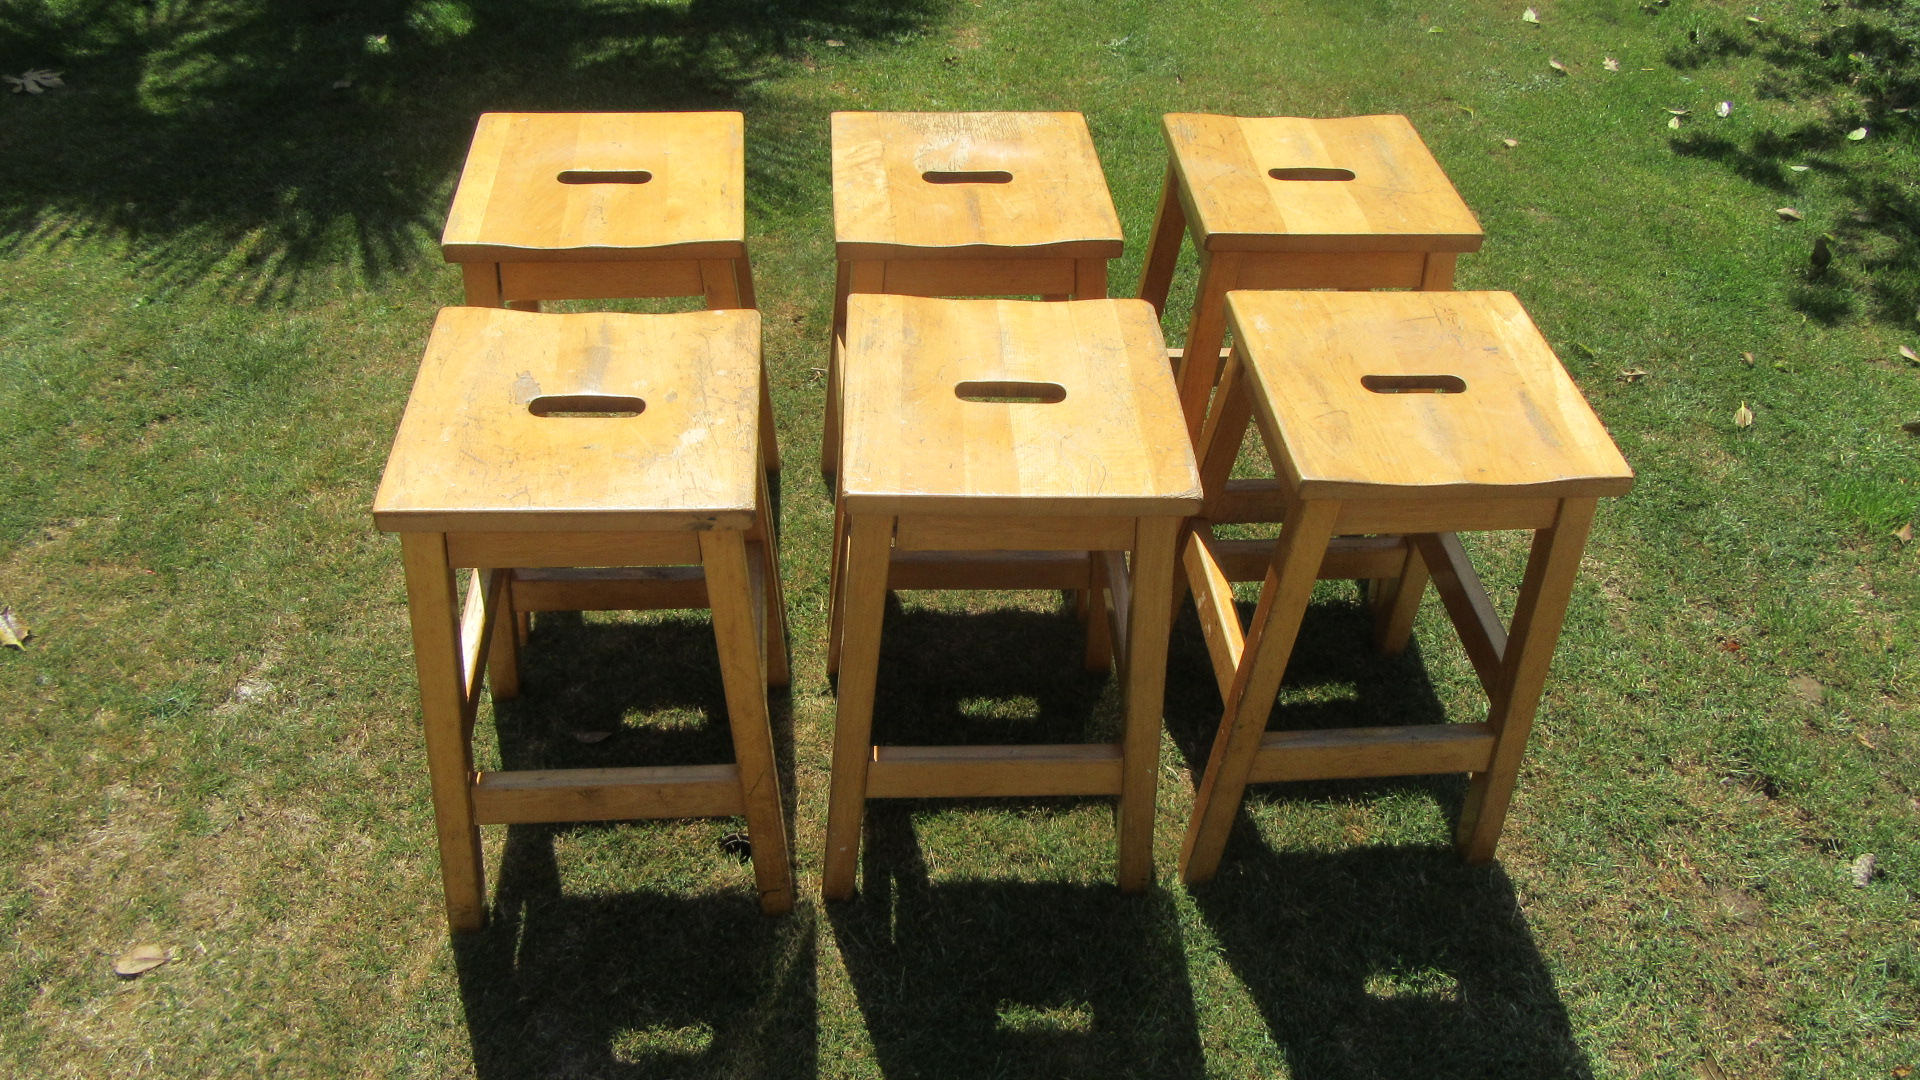 50 vintage lab stools sold as a lot of sets !